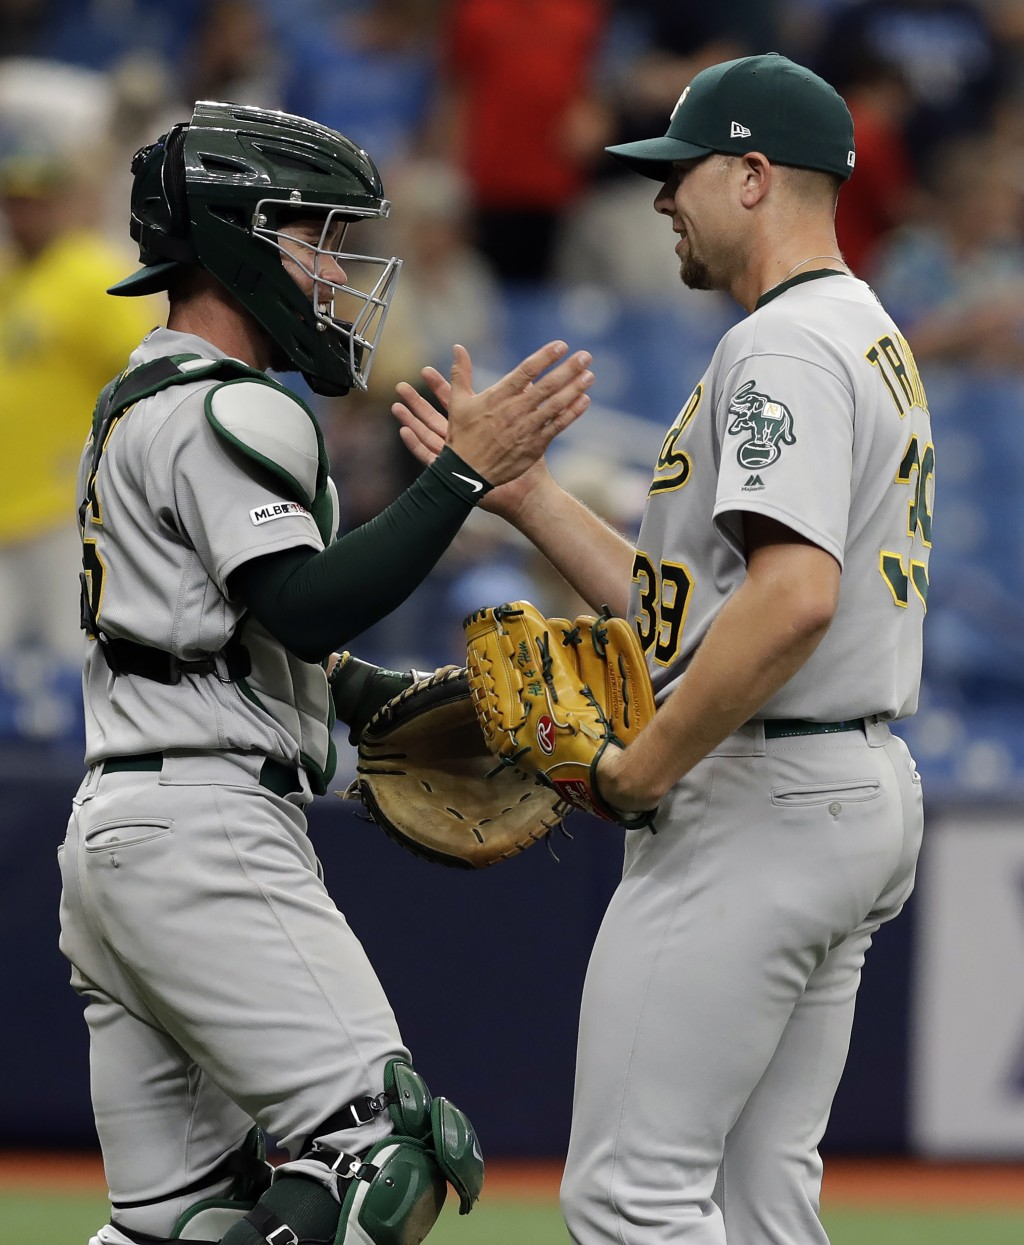 Oakland Athletics relief pitcher Blake Treinen, right, and catcher Beau Taylor celebrate after the team defeated the Tampa Bay Rays during a baseball